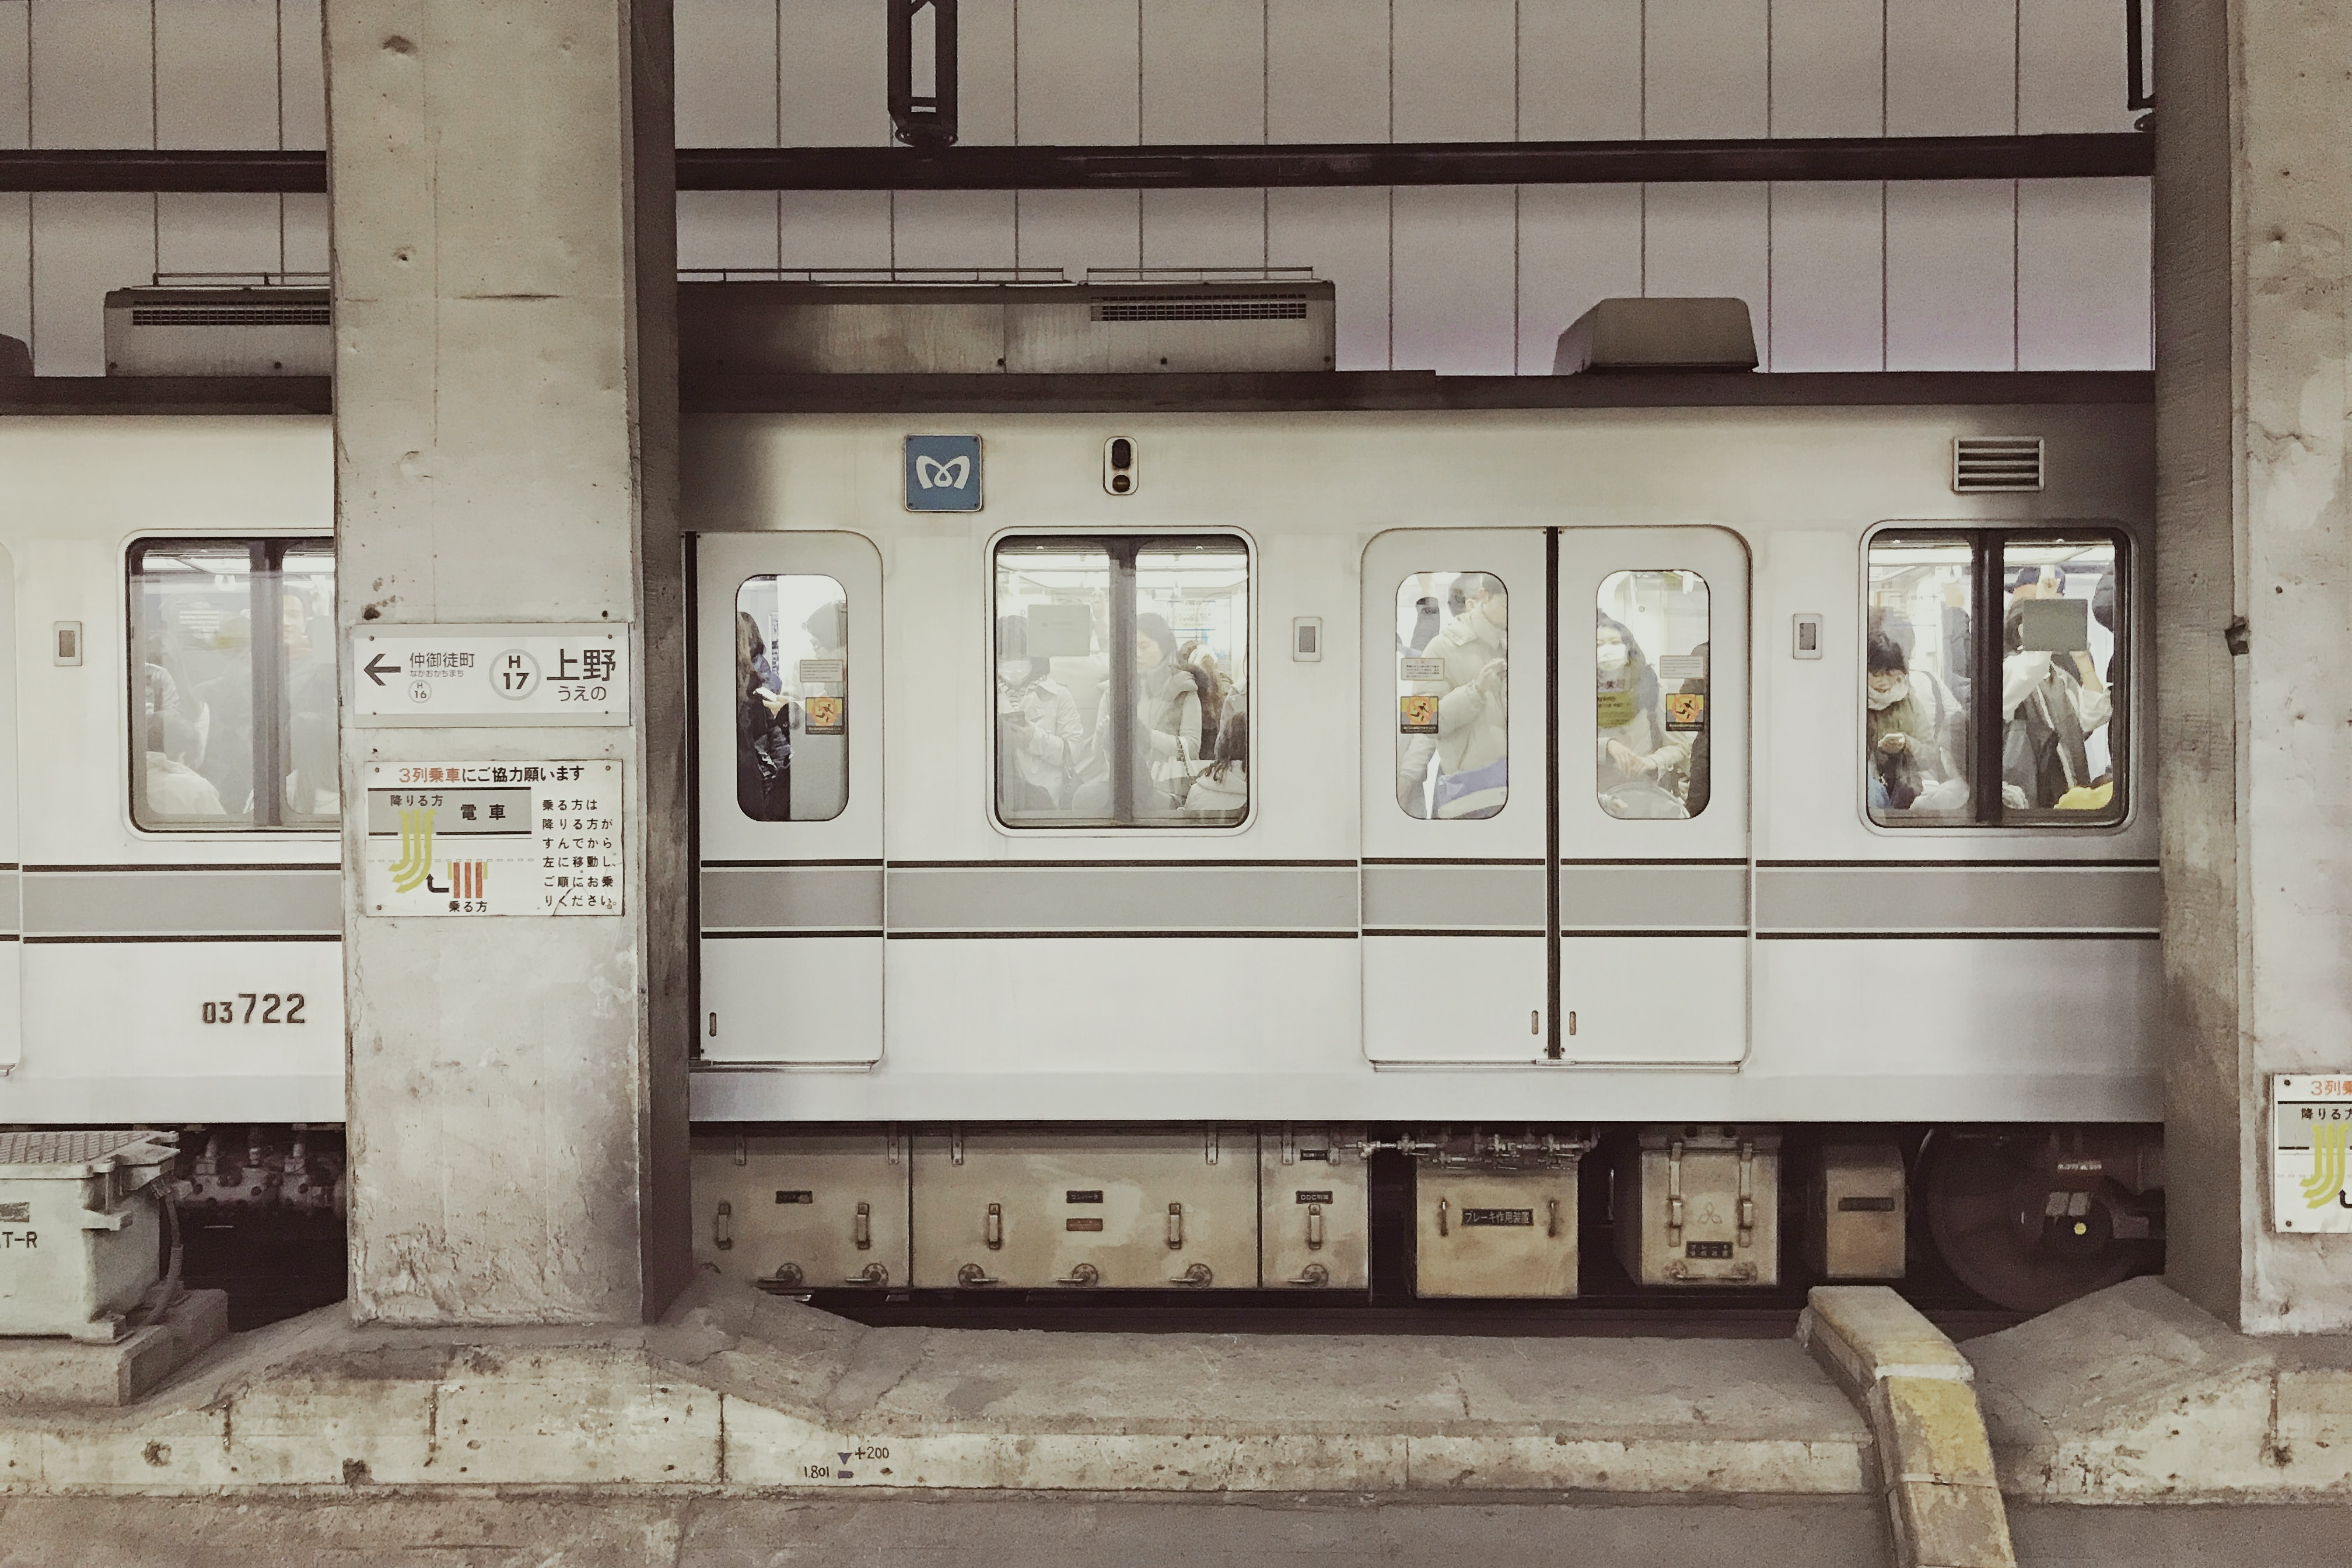 White subway car with doors and windows stopped at Ueno Station in between two concrete columns